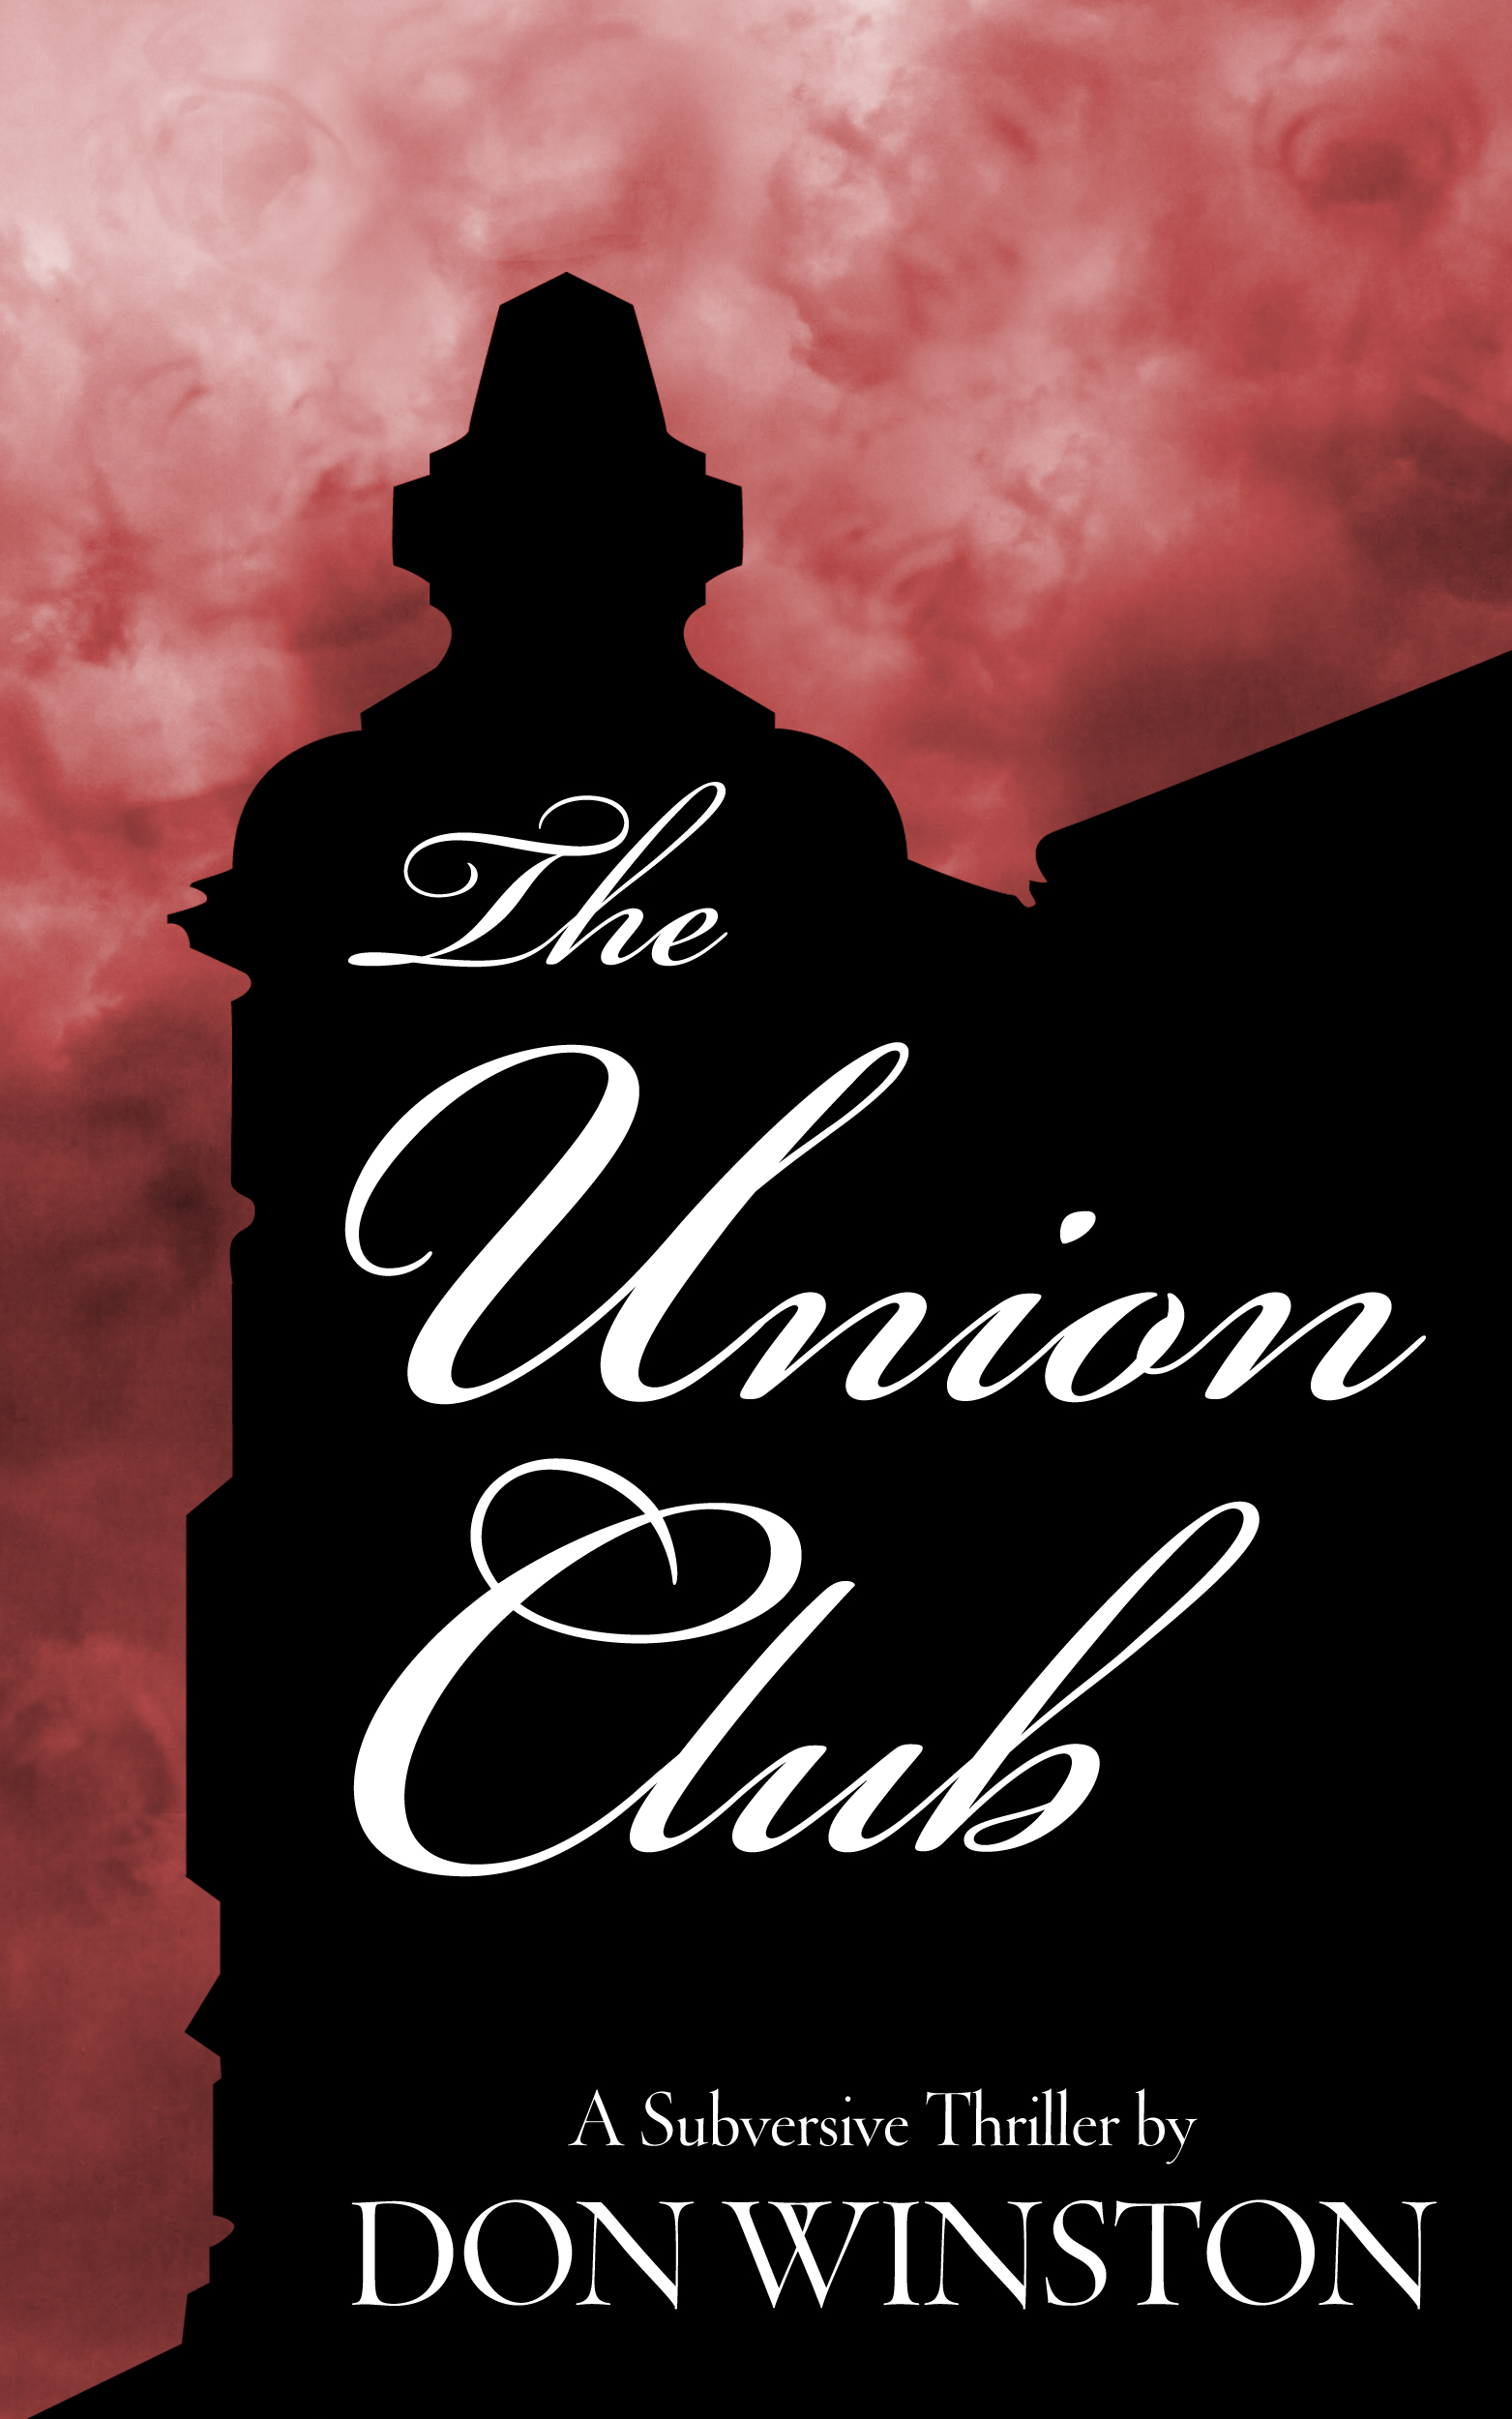 %22The Union Club%22 Cover KINDLE FINAL